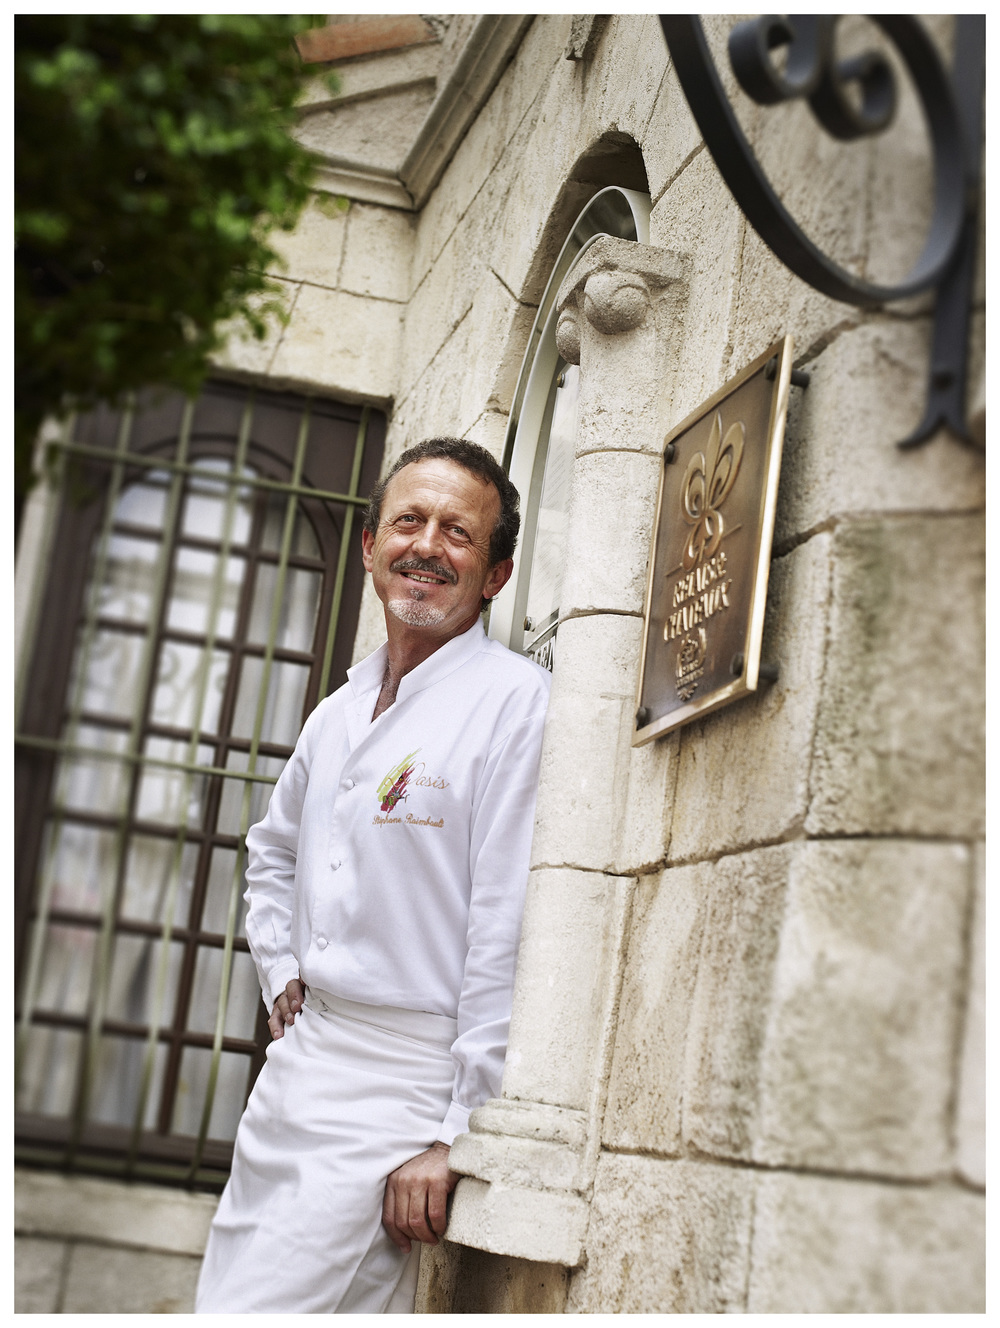 Baroque Access sits down to speak with renown chef Stéphane Raimbault